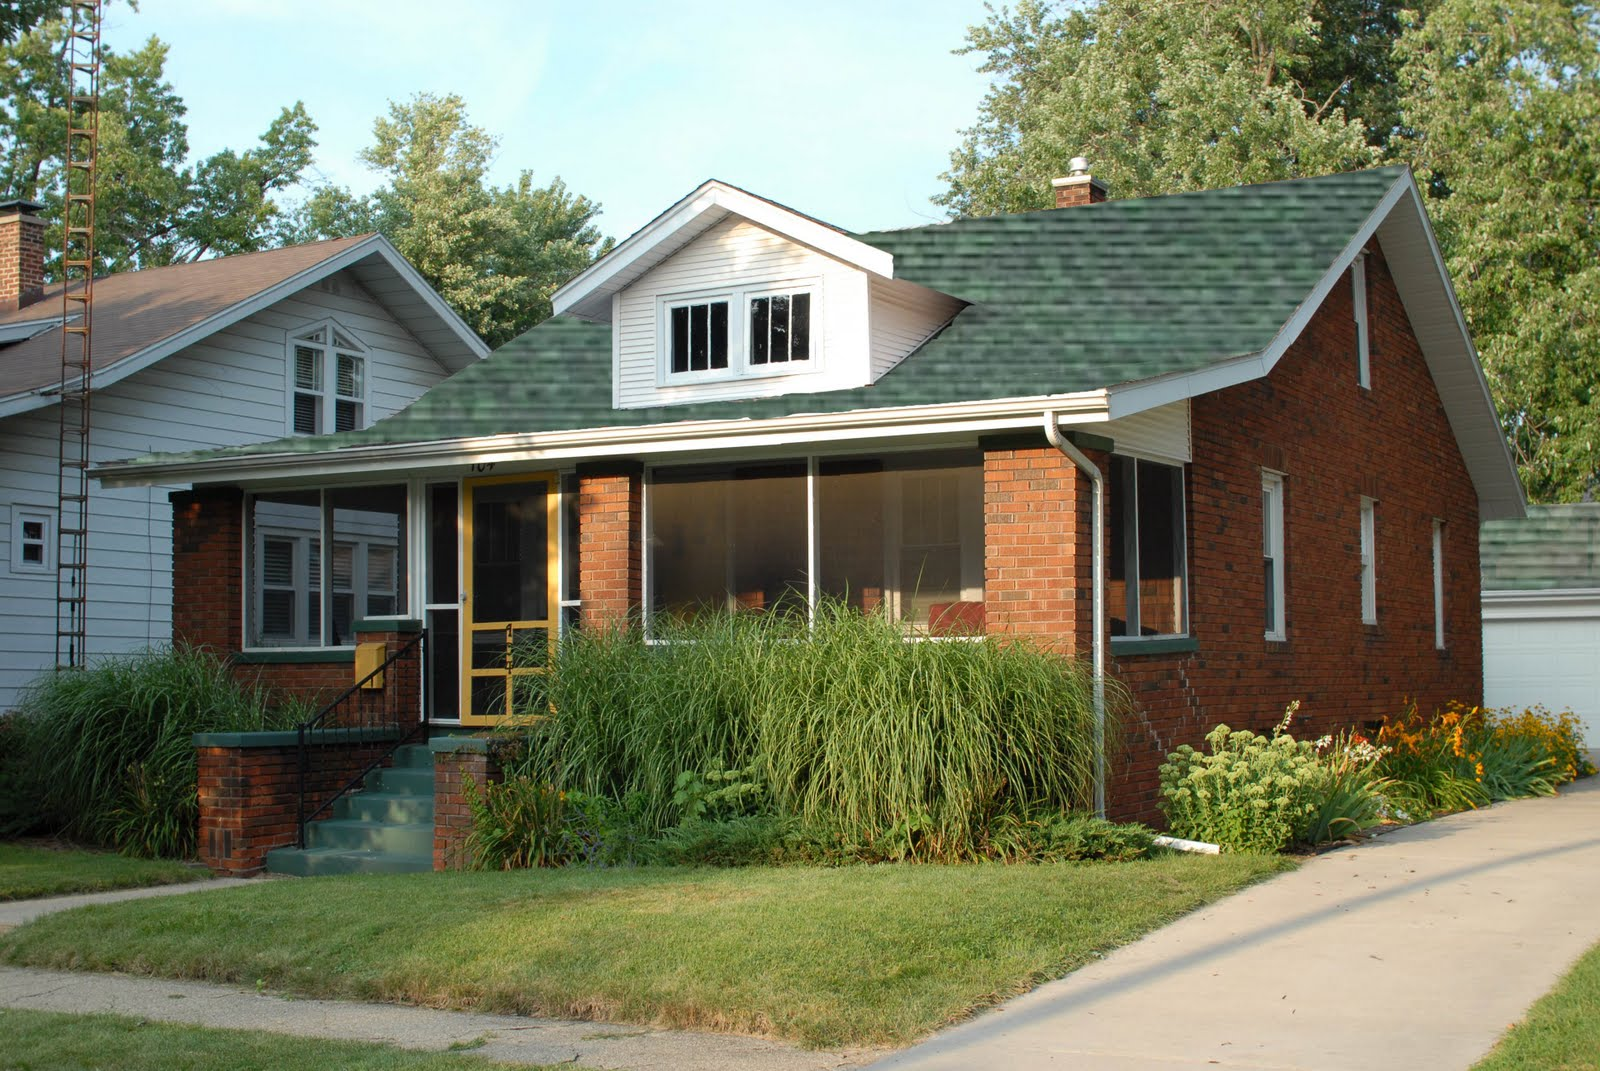 Coreys Notes and Pics Help us Which shingle color looks best – Hunter Green Roof Shingles